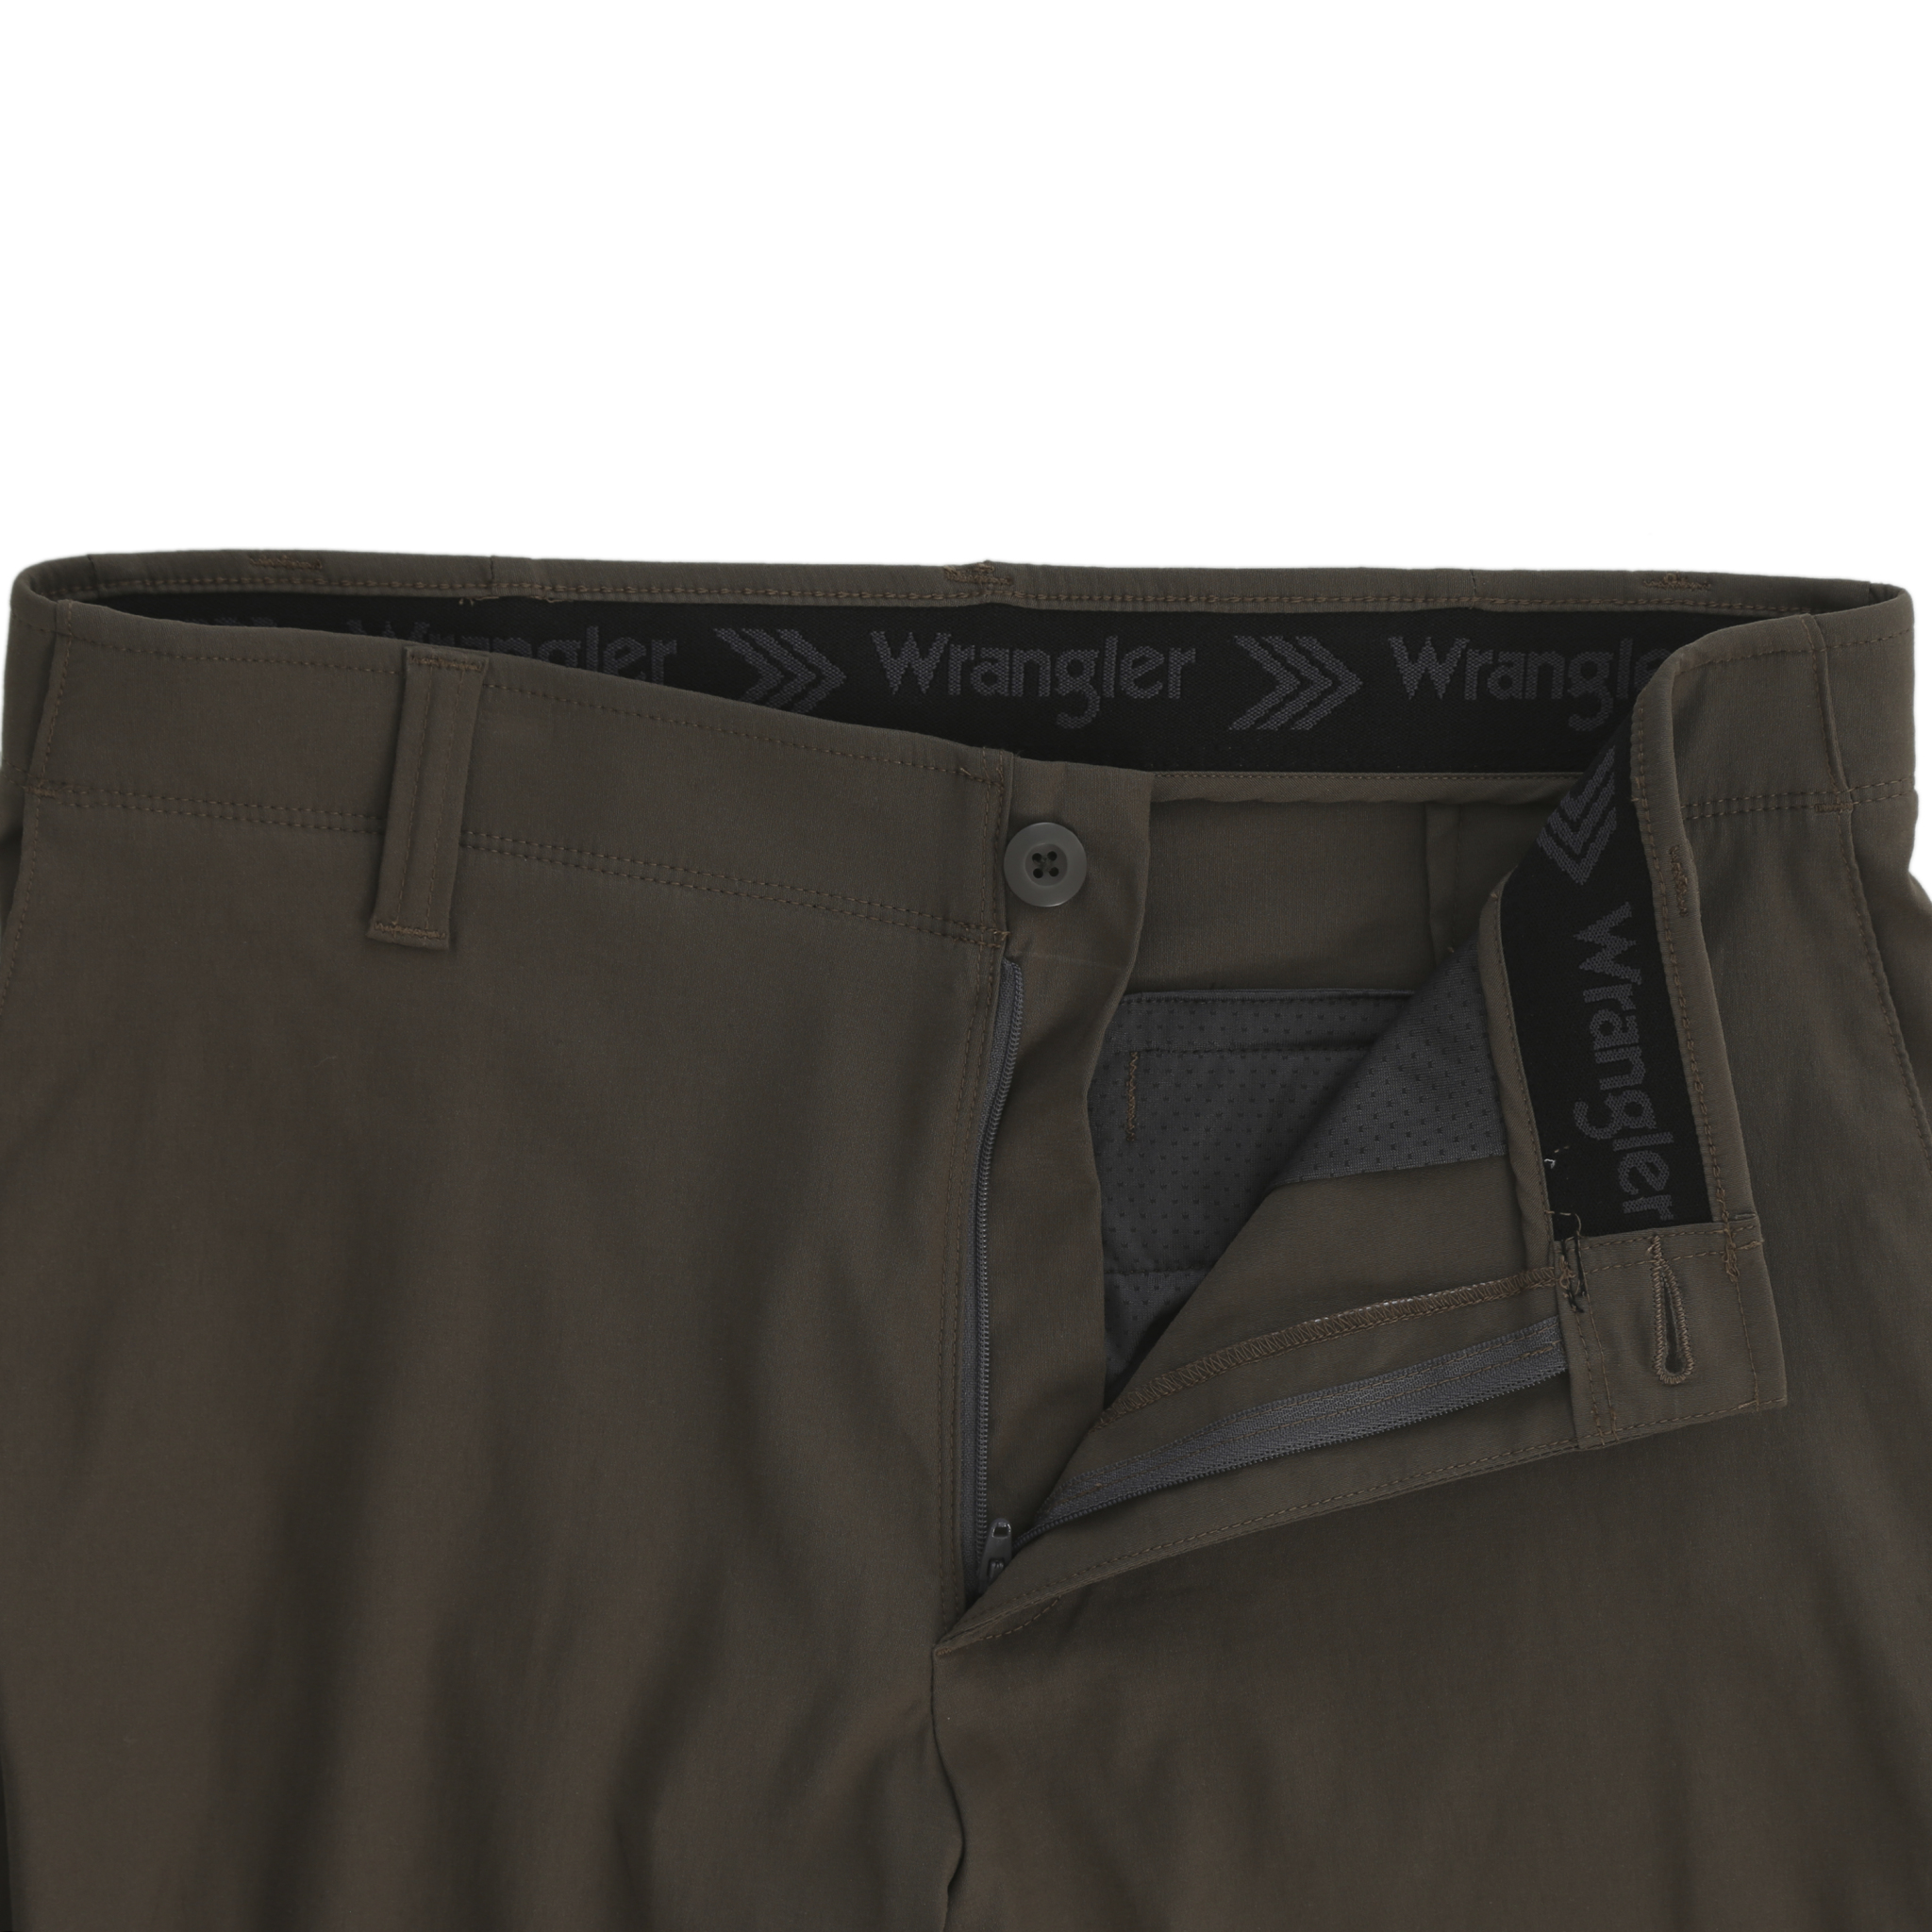 Wrangler-Neuf-Solide-Homme-Performance-Series-Outdoor-Confort-Coupe-Droite-Pantalon miniature 13